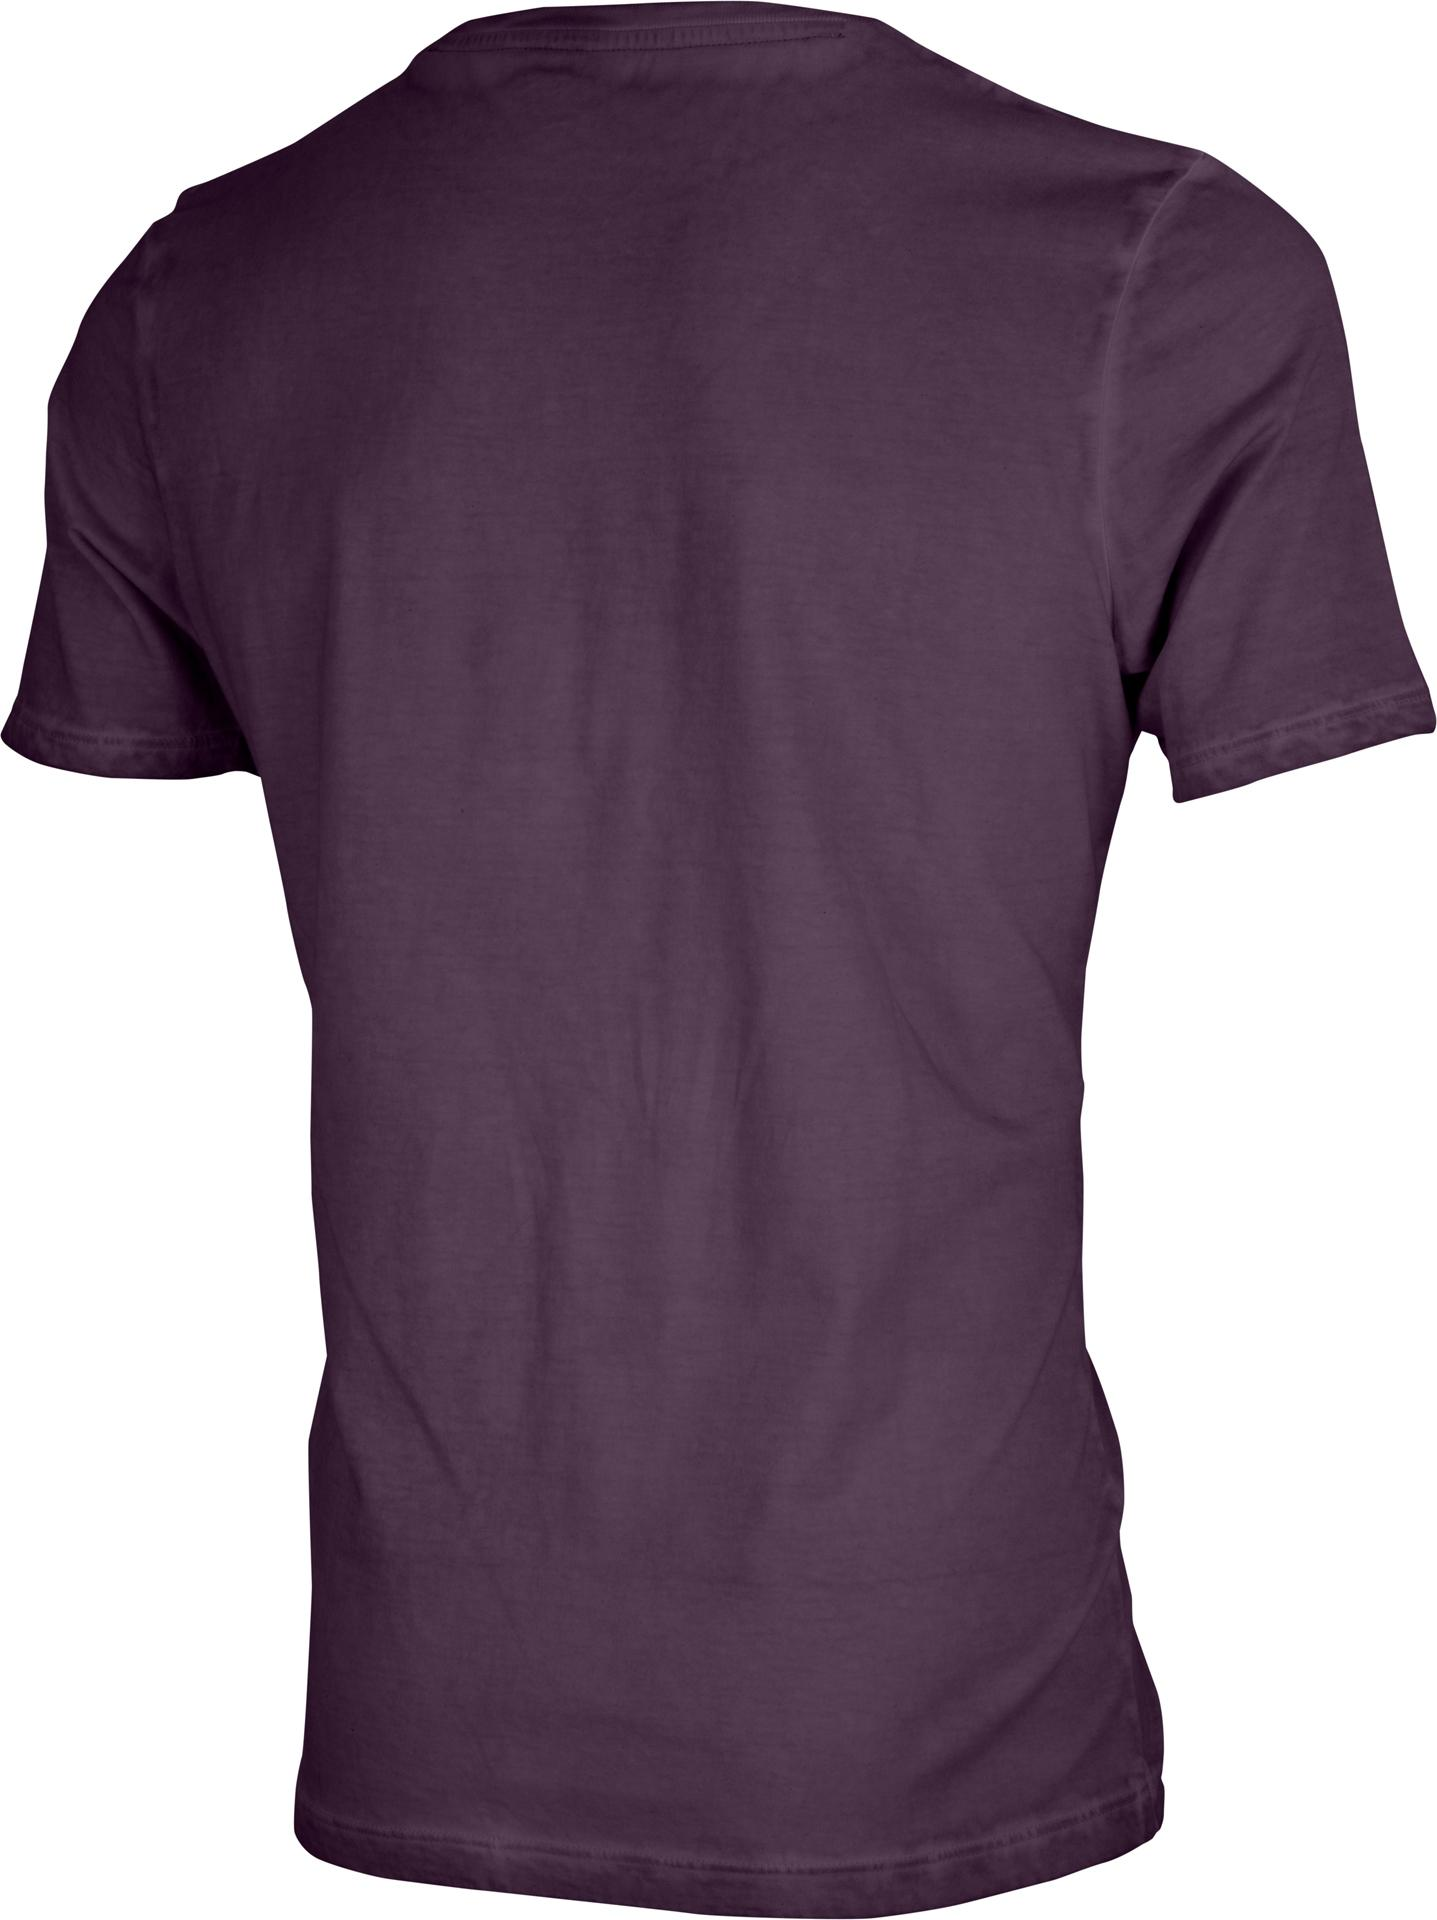 Afbeelding Castelli Casual T-shirt Heren Rood  - CA Bassorilievo Tee-Barbaresco Red